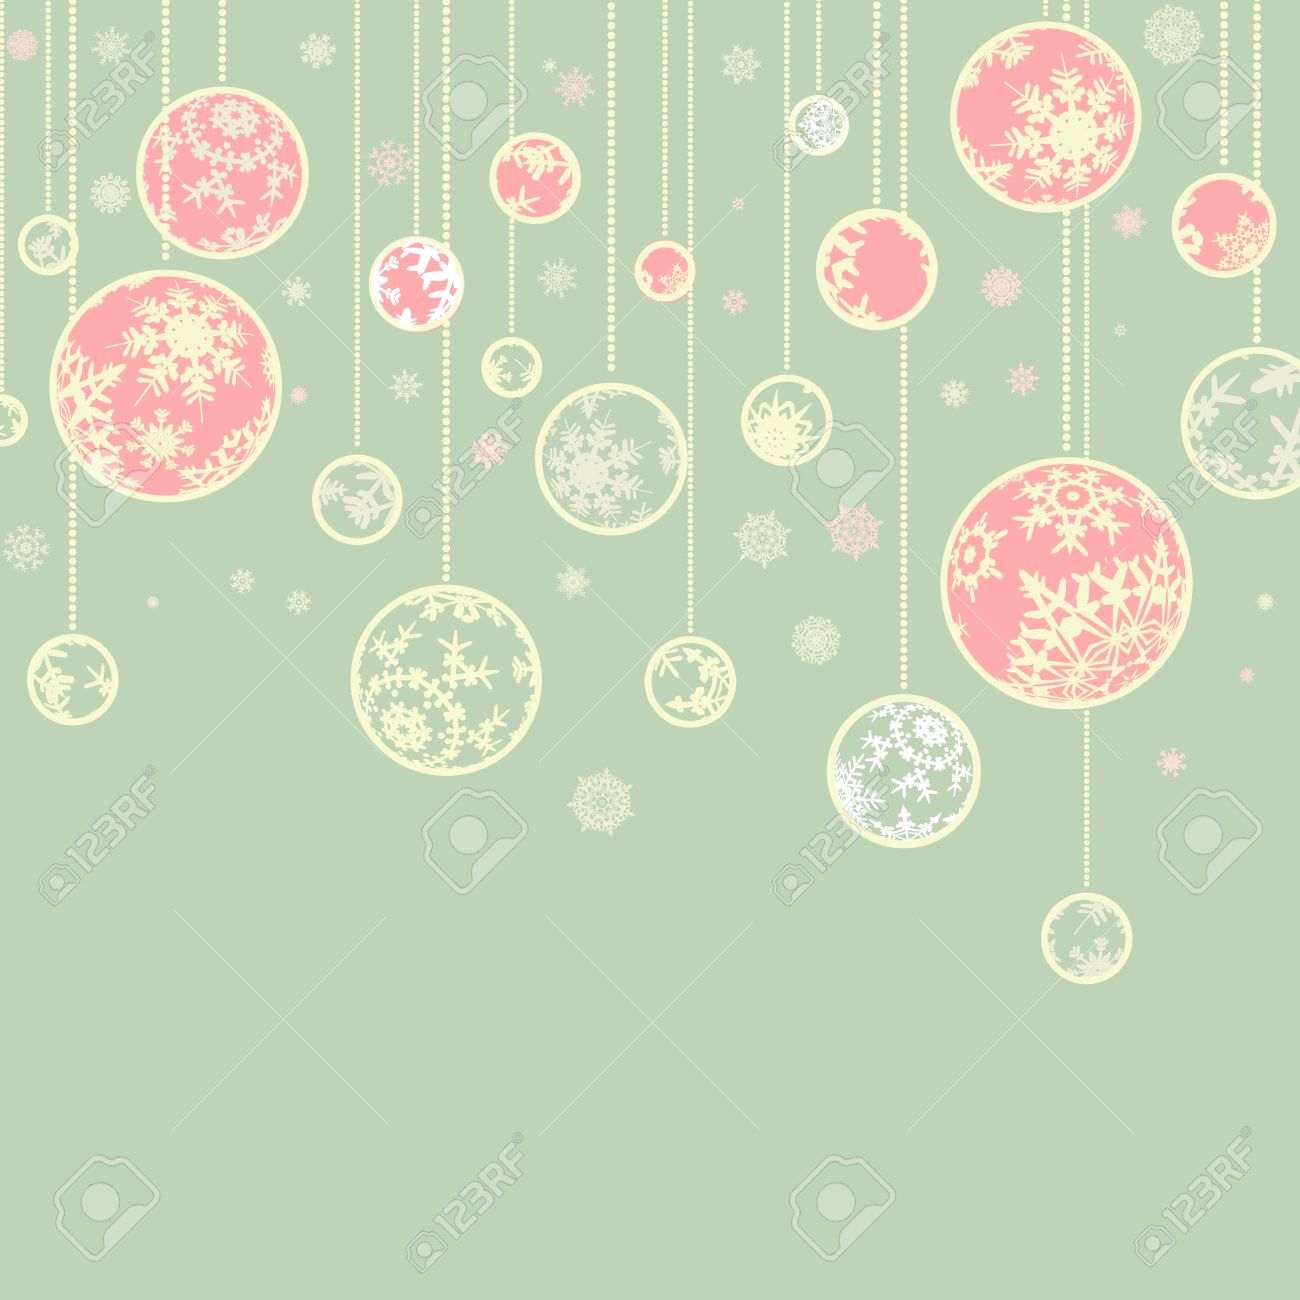 Retro christmas template with ball and snowflakes for vintage card design Stock Photo - 8315371